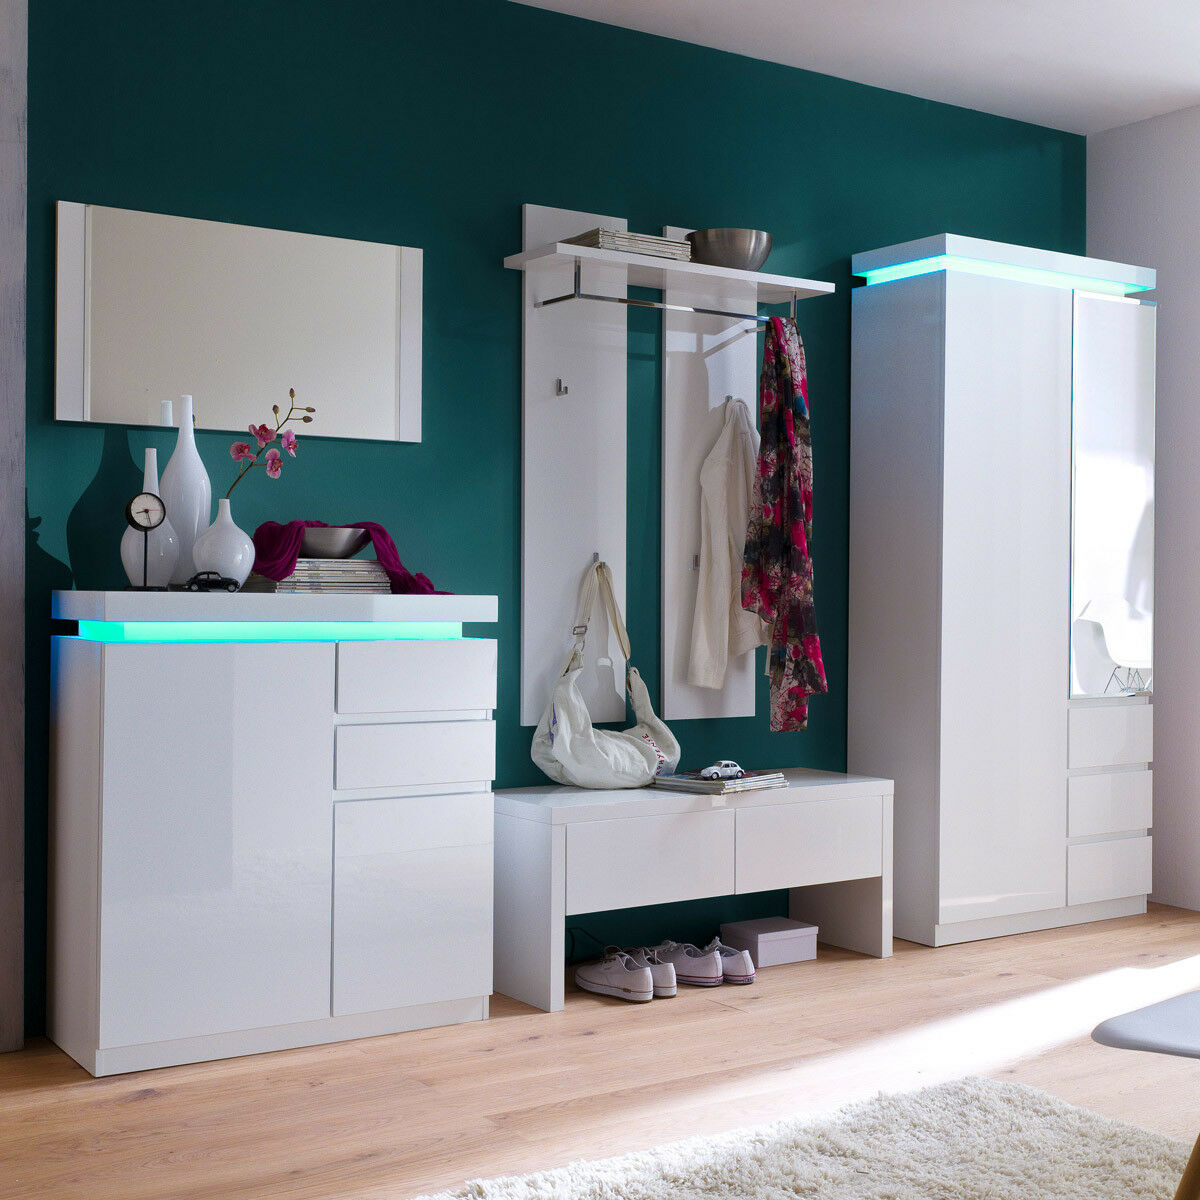 garderobenset ocean garderobe flurm bel wei hochglanz lack rbg beleuchtung eur 989 95. Black Bedroom Furniture Sets. Home Design Ideas